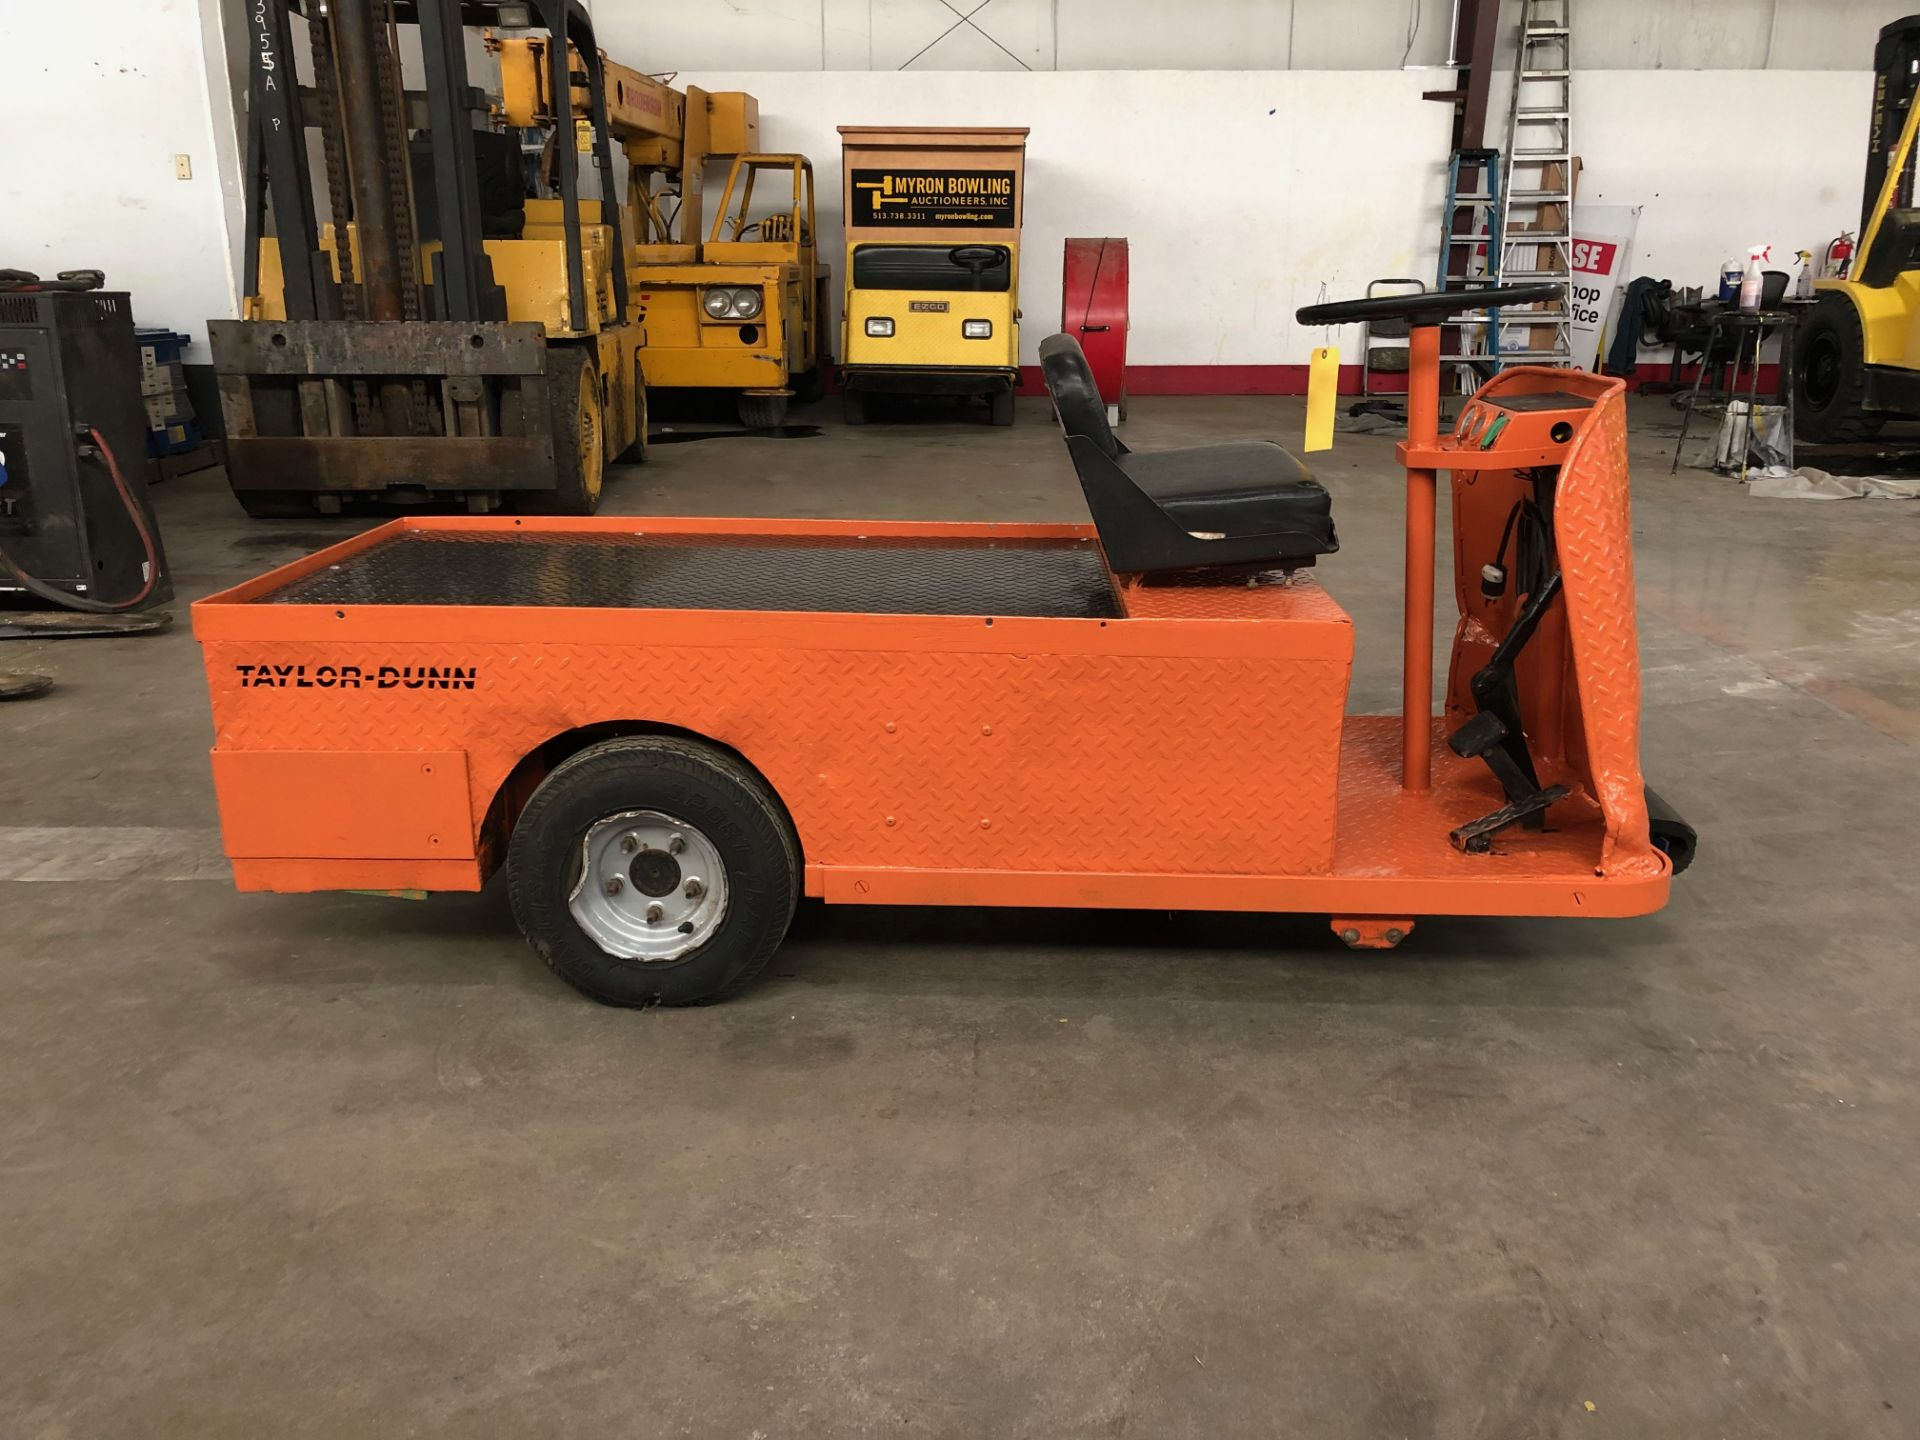 Lot 24A - 2007 TAYLOR-DUNN 3-WHEEL ELECTRIC PERSONNEL CART, MODEL: C0-014-32, WITH 24-VOLT, 450-LB. CAPACITY